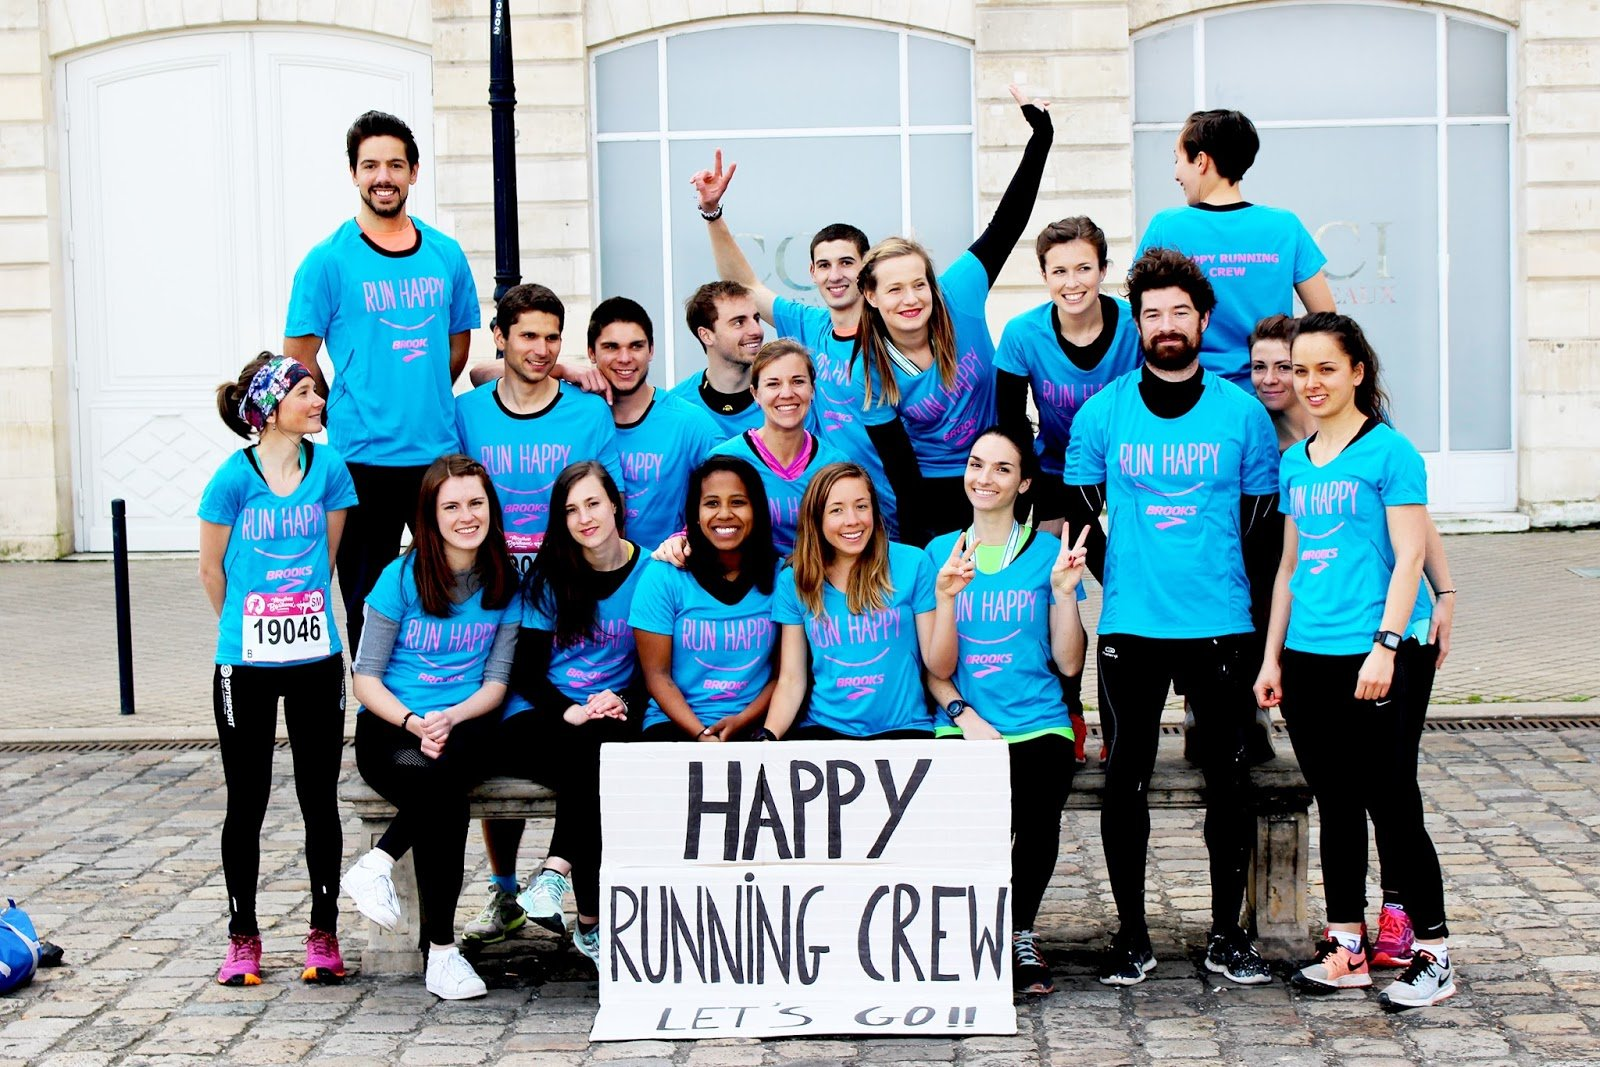 Happy Running Crew